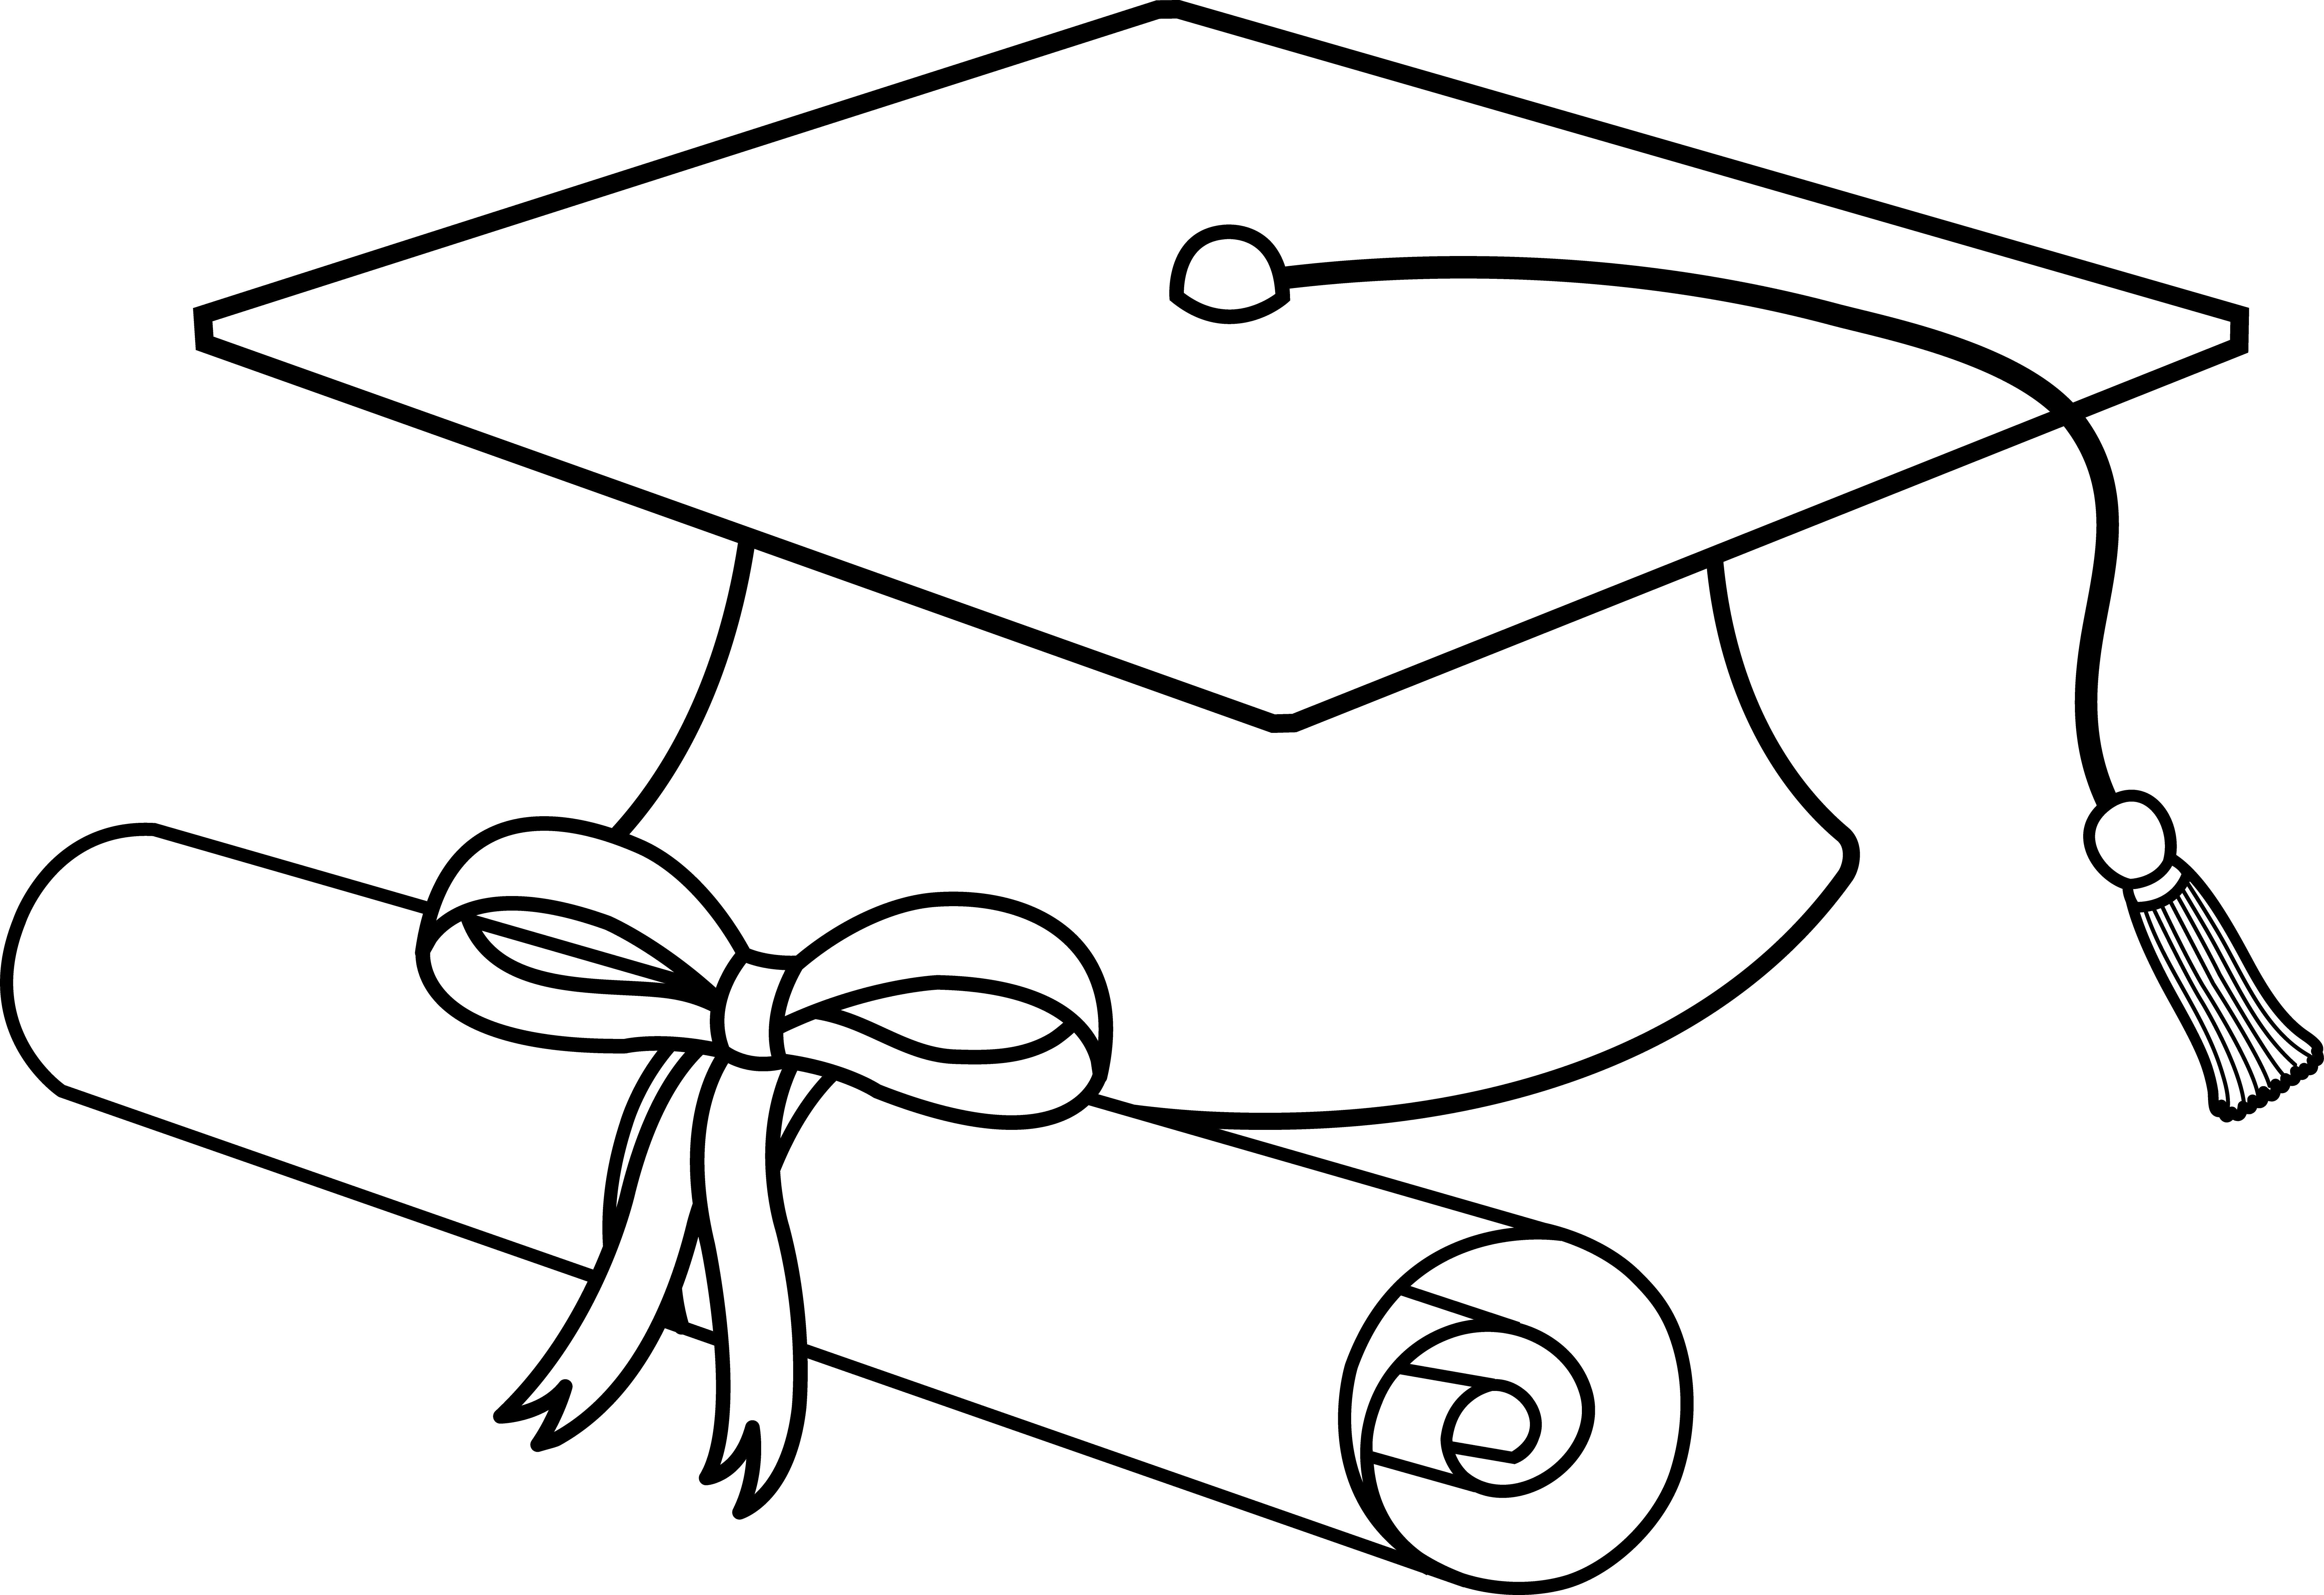 Flying Graduation Caps Clip Art | Graduation Cap Line Art - Free Clip Art | Stuff to Buy | Pinterest | Clip art, Graduation and Clip art free